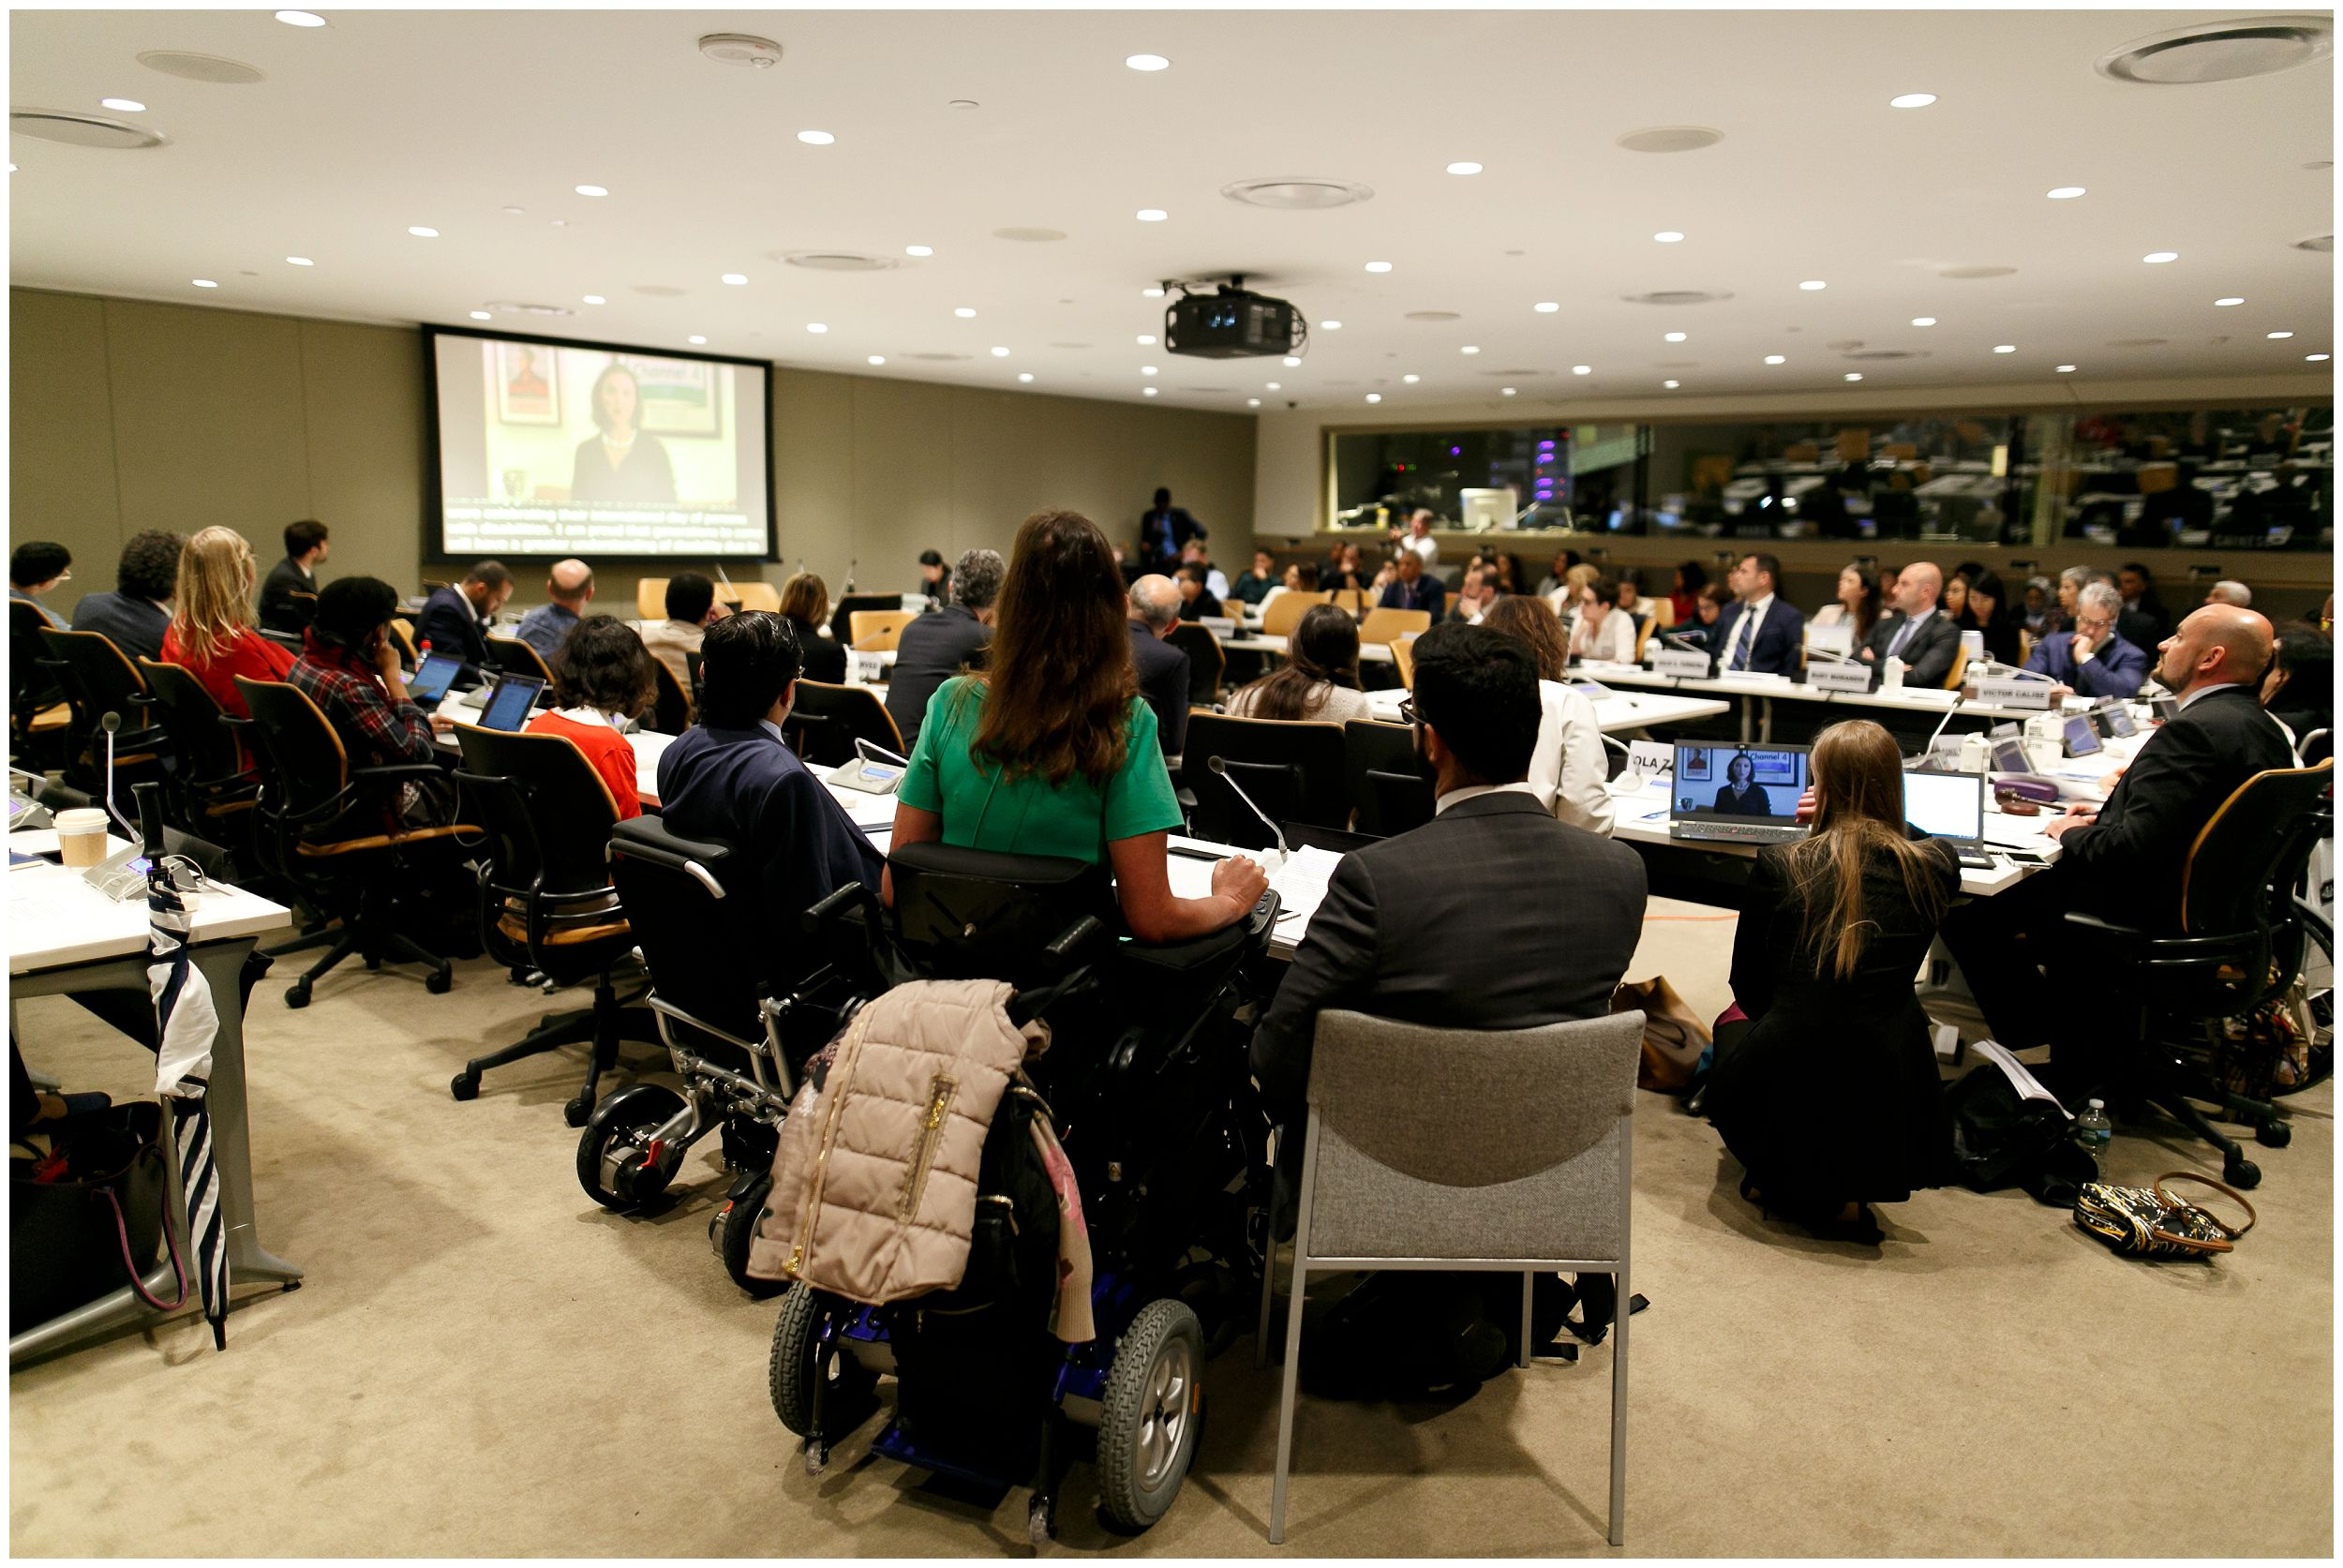 Sports-for-all-the-Convention-on-the-Rights-of-Persons-with-Disabilities-UNDESA-007.jpg